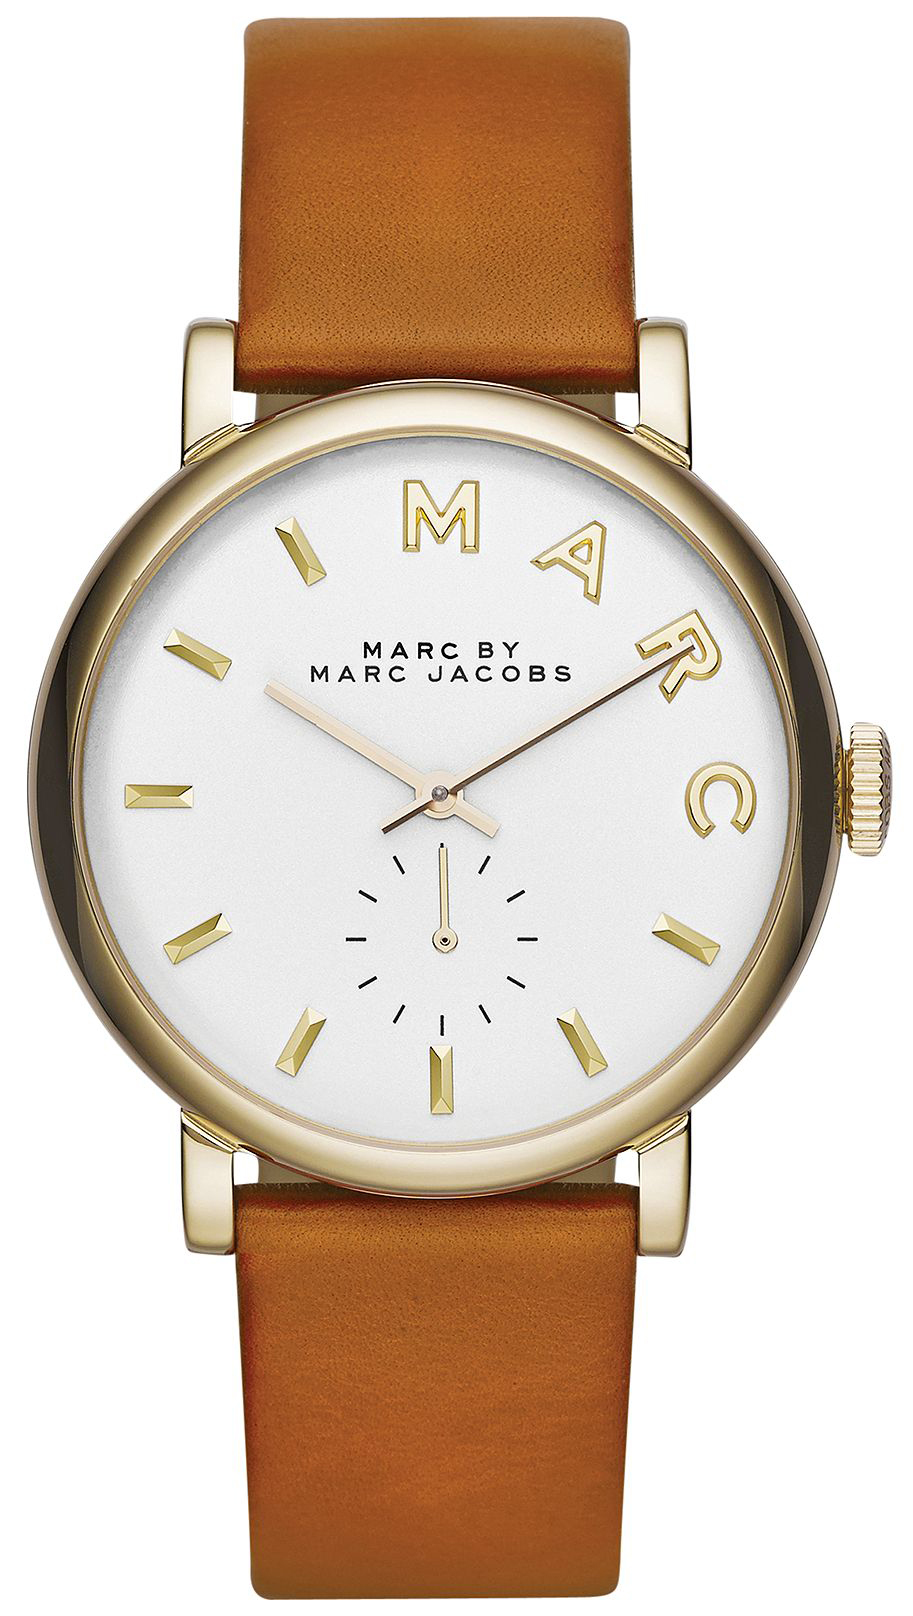 Marc by Marc Jacobs 99999 Damklocka MBM1316 Vit/Läder Ø36 mm - Marc by Marc Jacobs